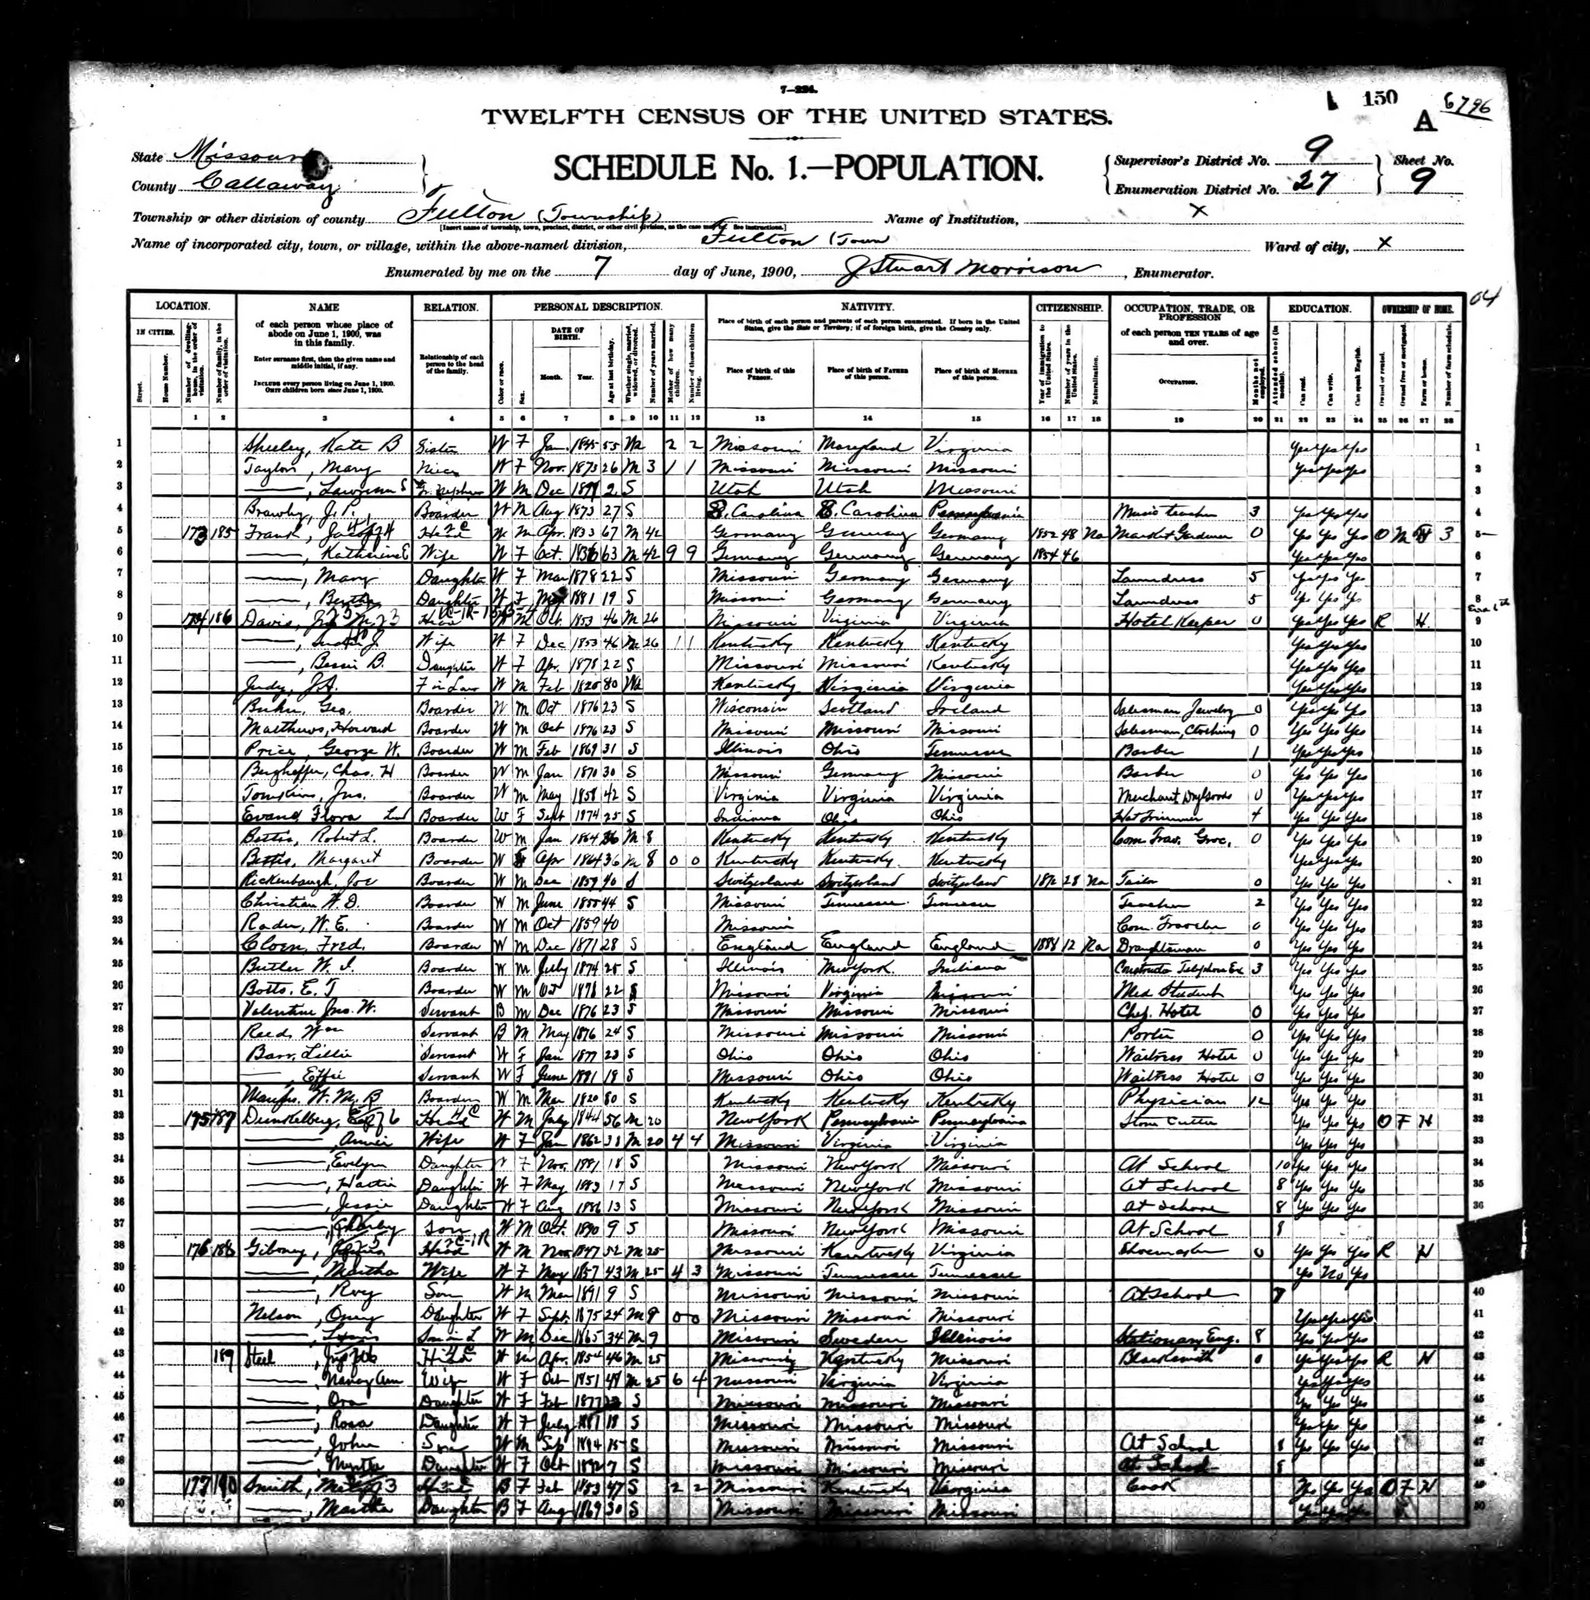 [Jacob+Frank+1900+Census.x]